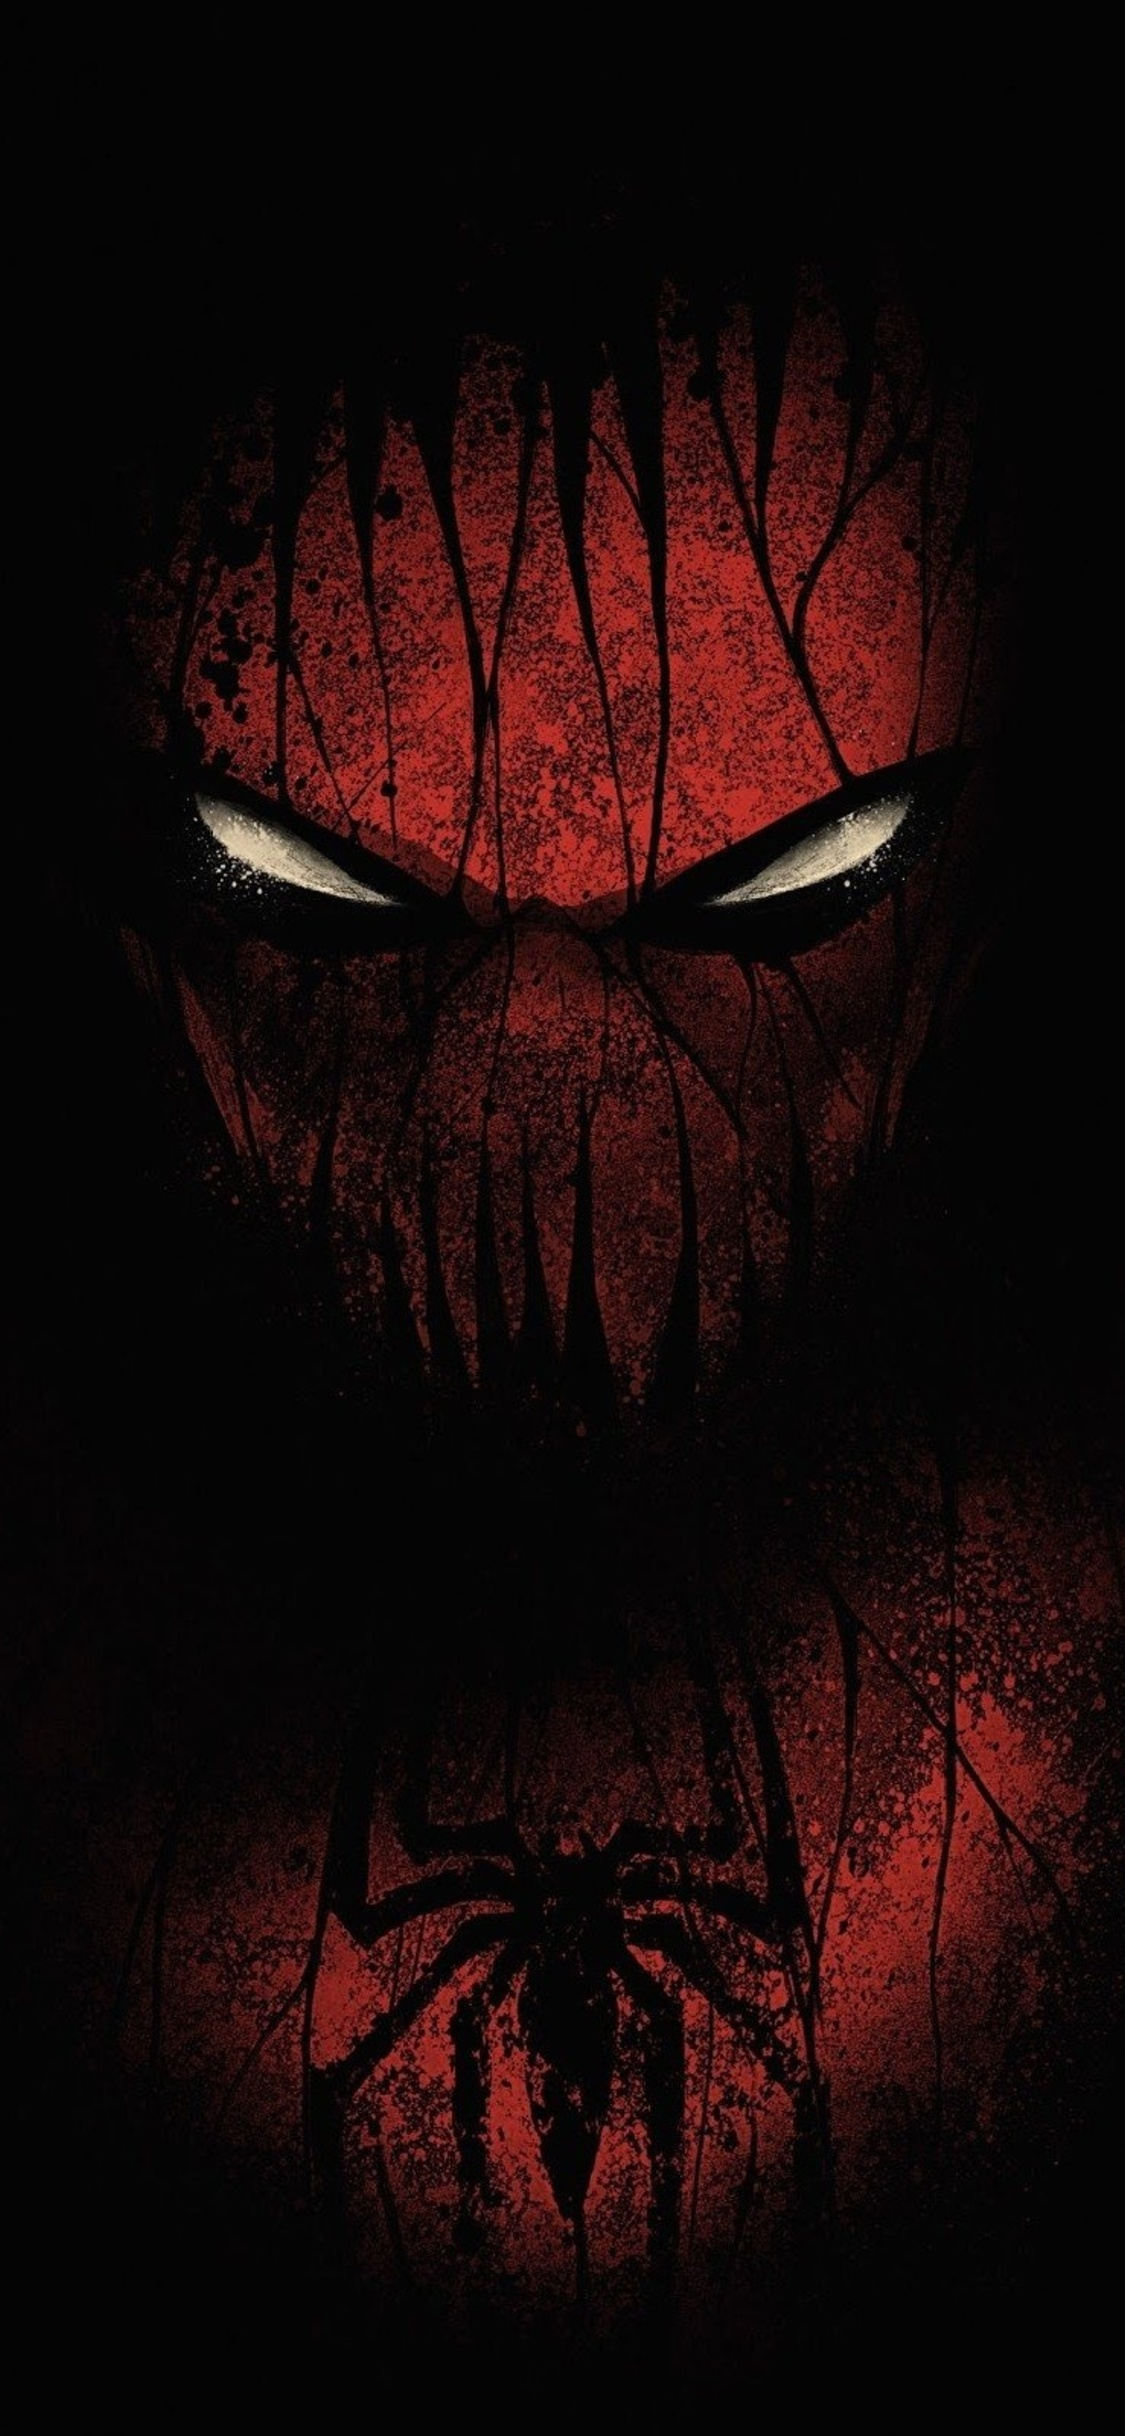 1125x2436 Red Black Spiderman Iphone Xs Iphone 10 Iphone X